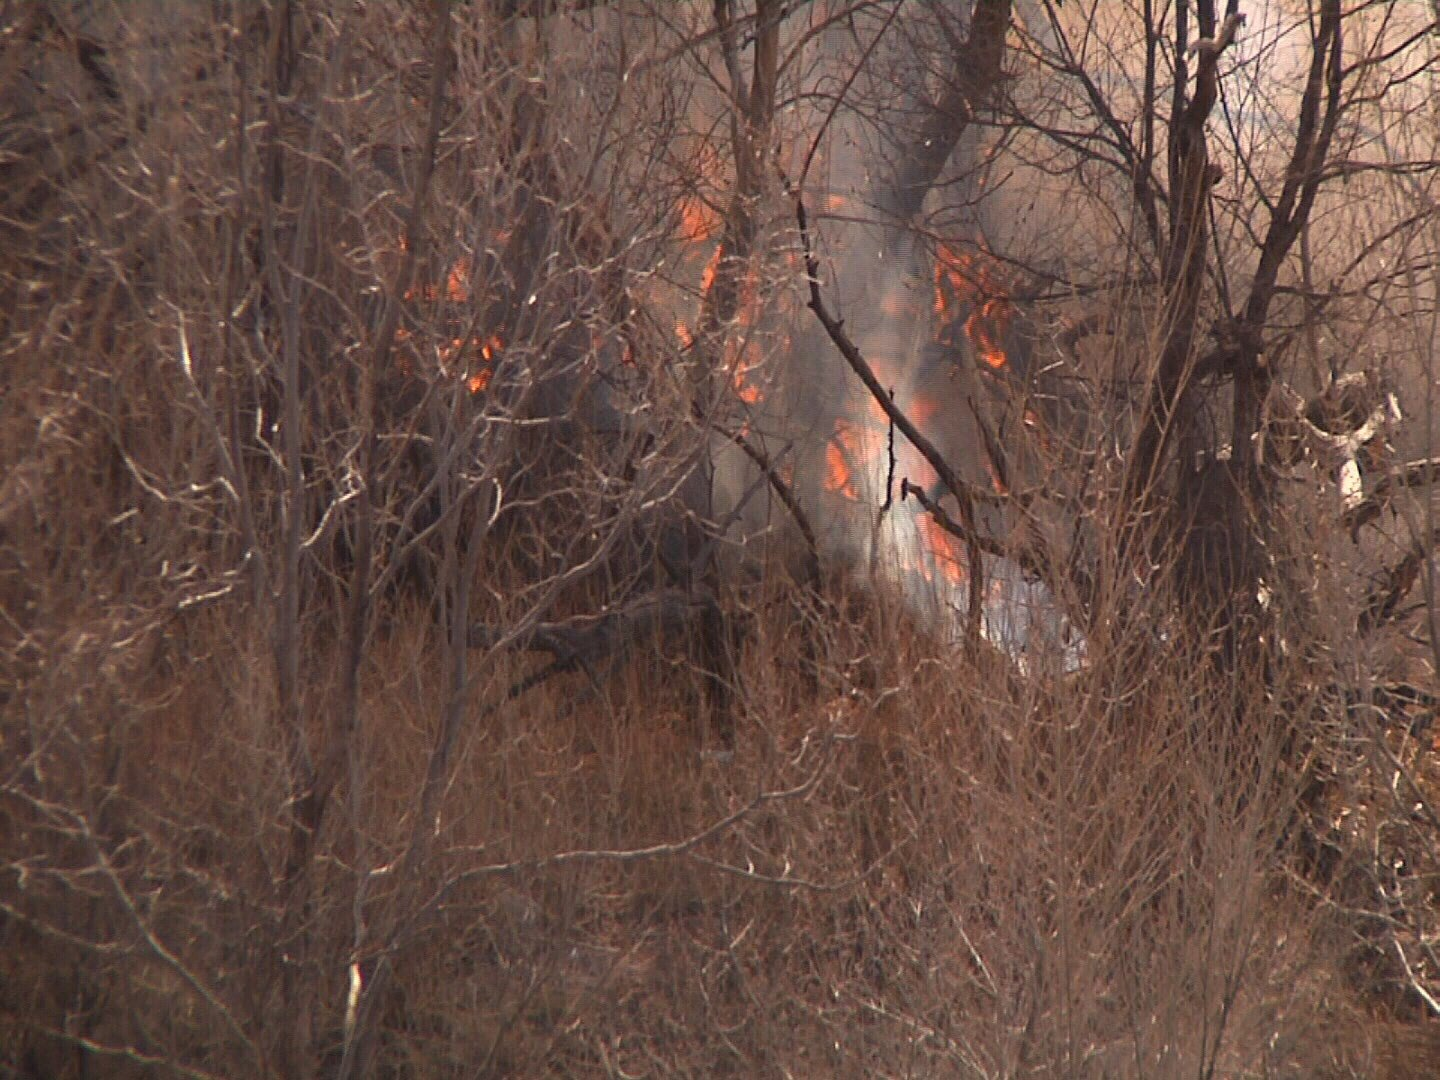 Burn restrictions were put into place in Colorado Springs on Friday, March 17. (KOAA)